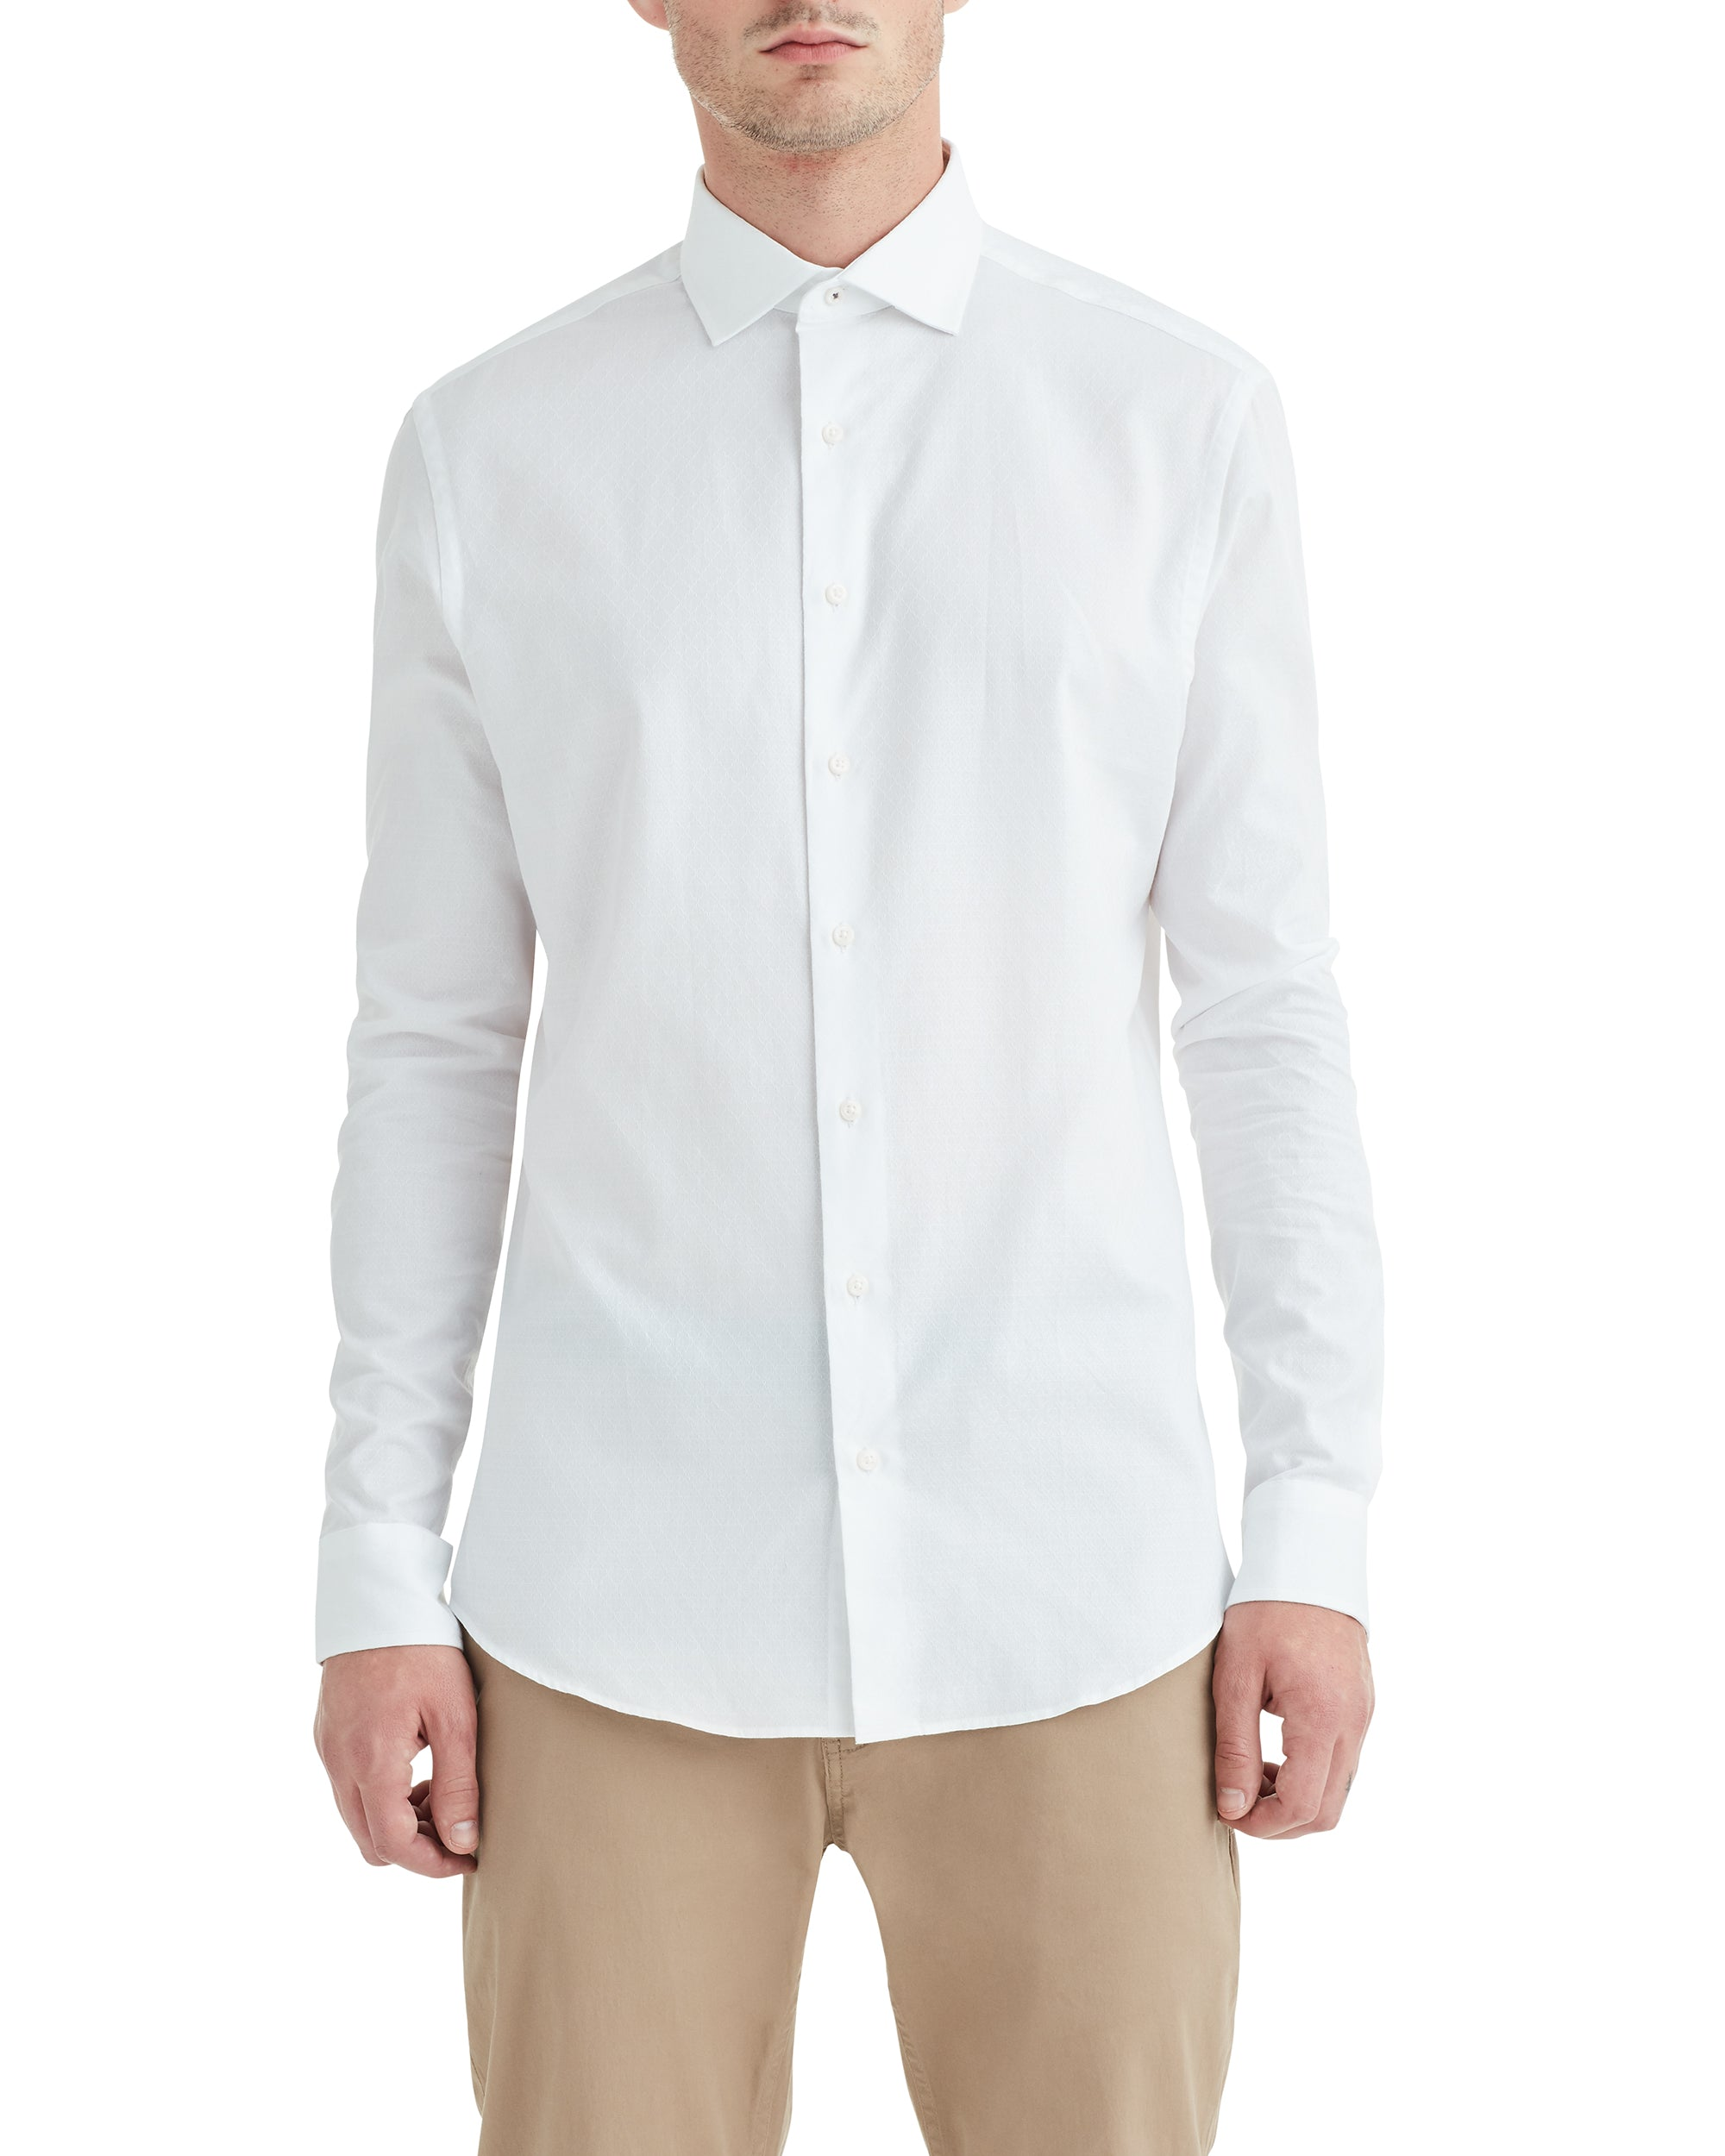 White on White Jacquard Slim Fit Dress Shirt